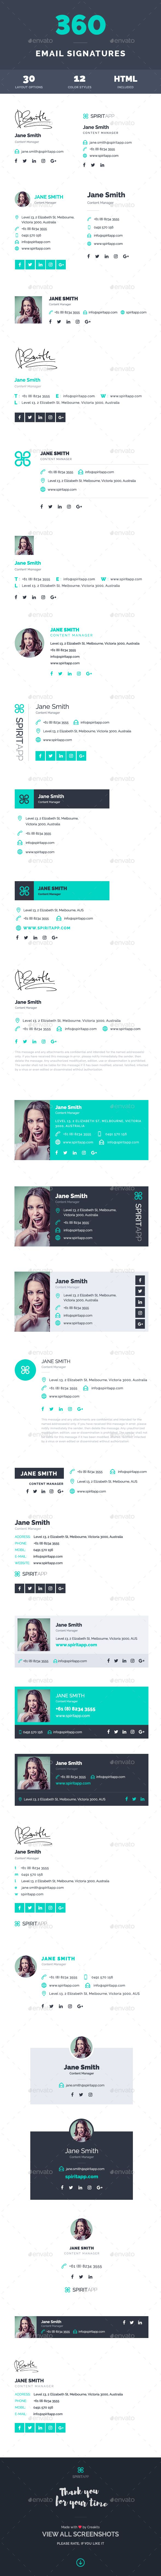 360 Professional E-Signature Templates | Template, Email signatures ...